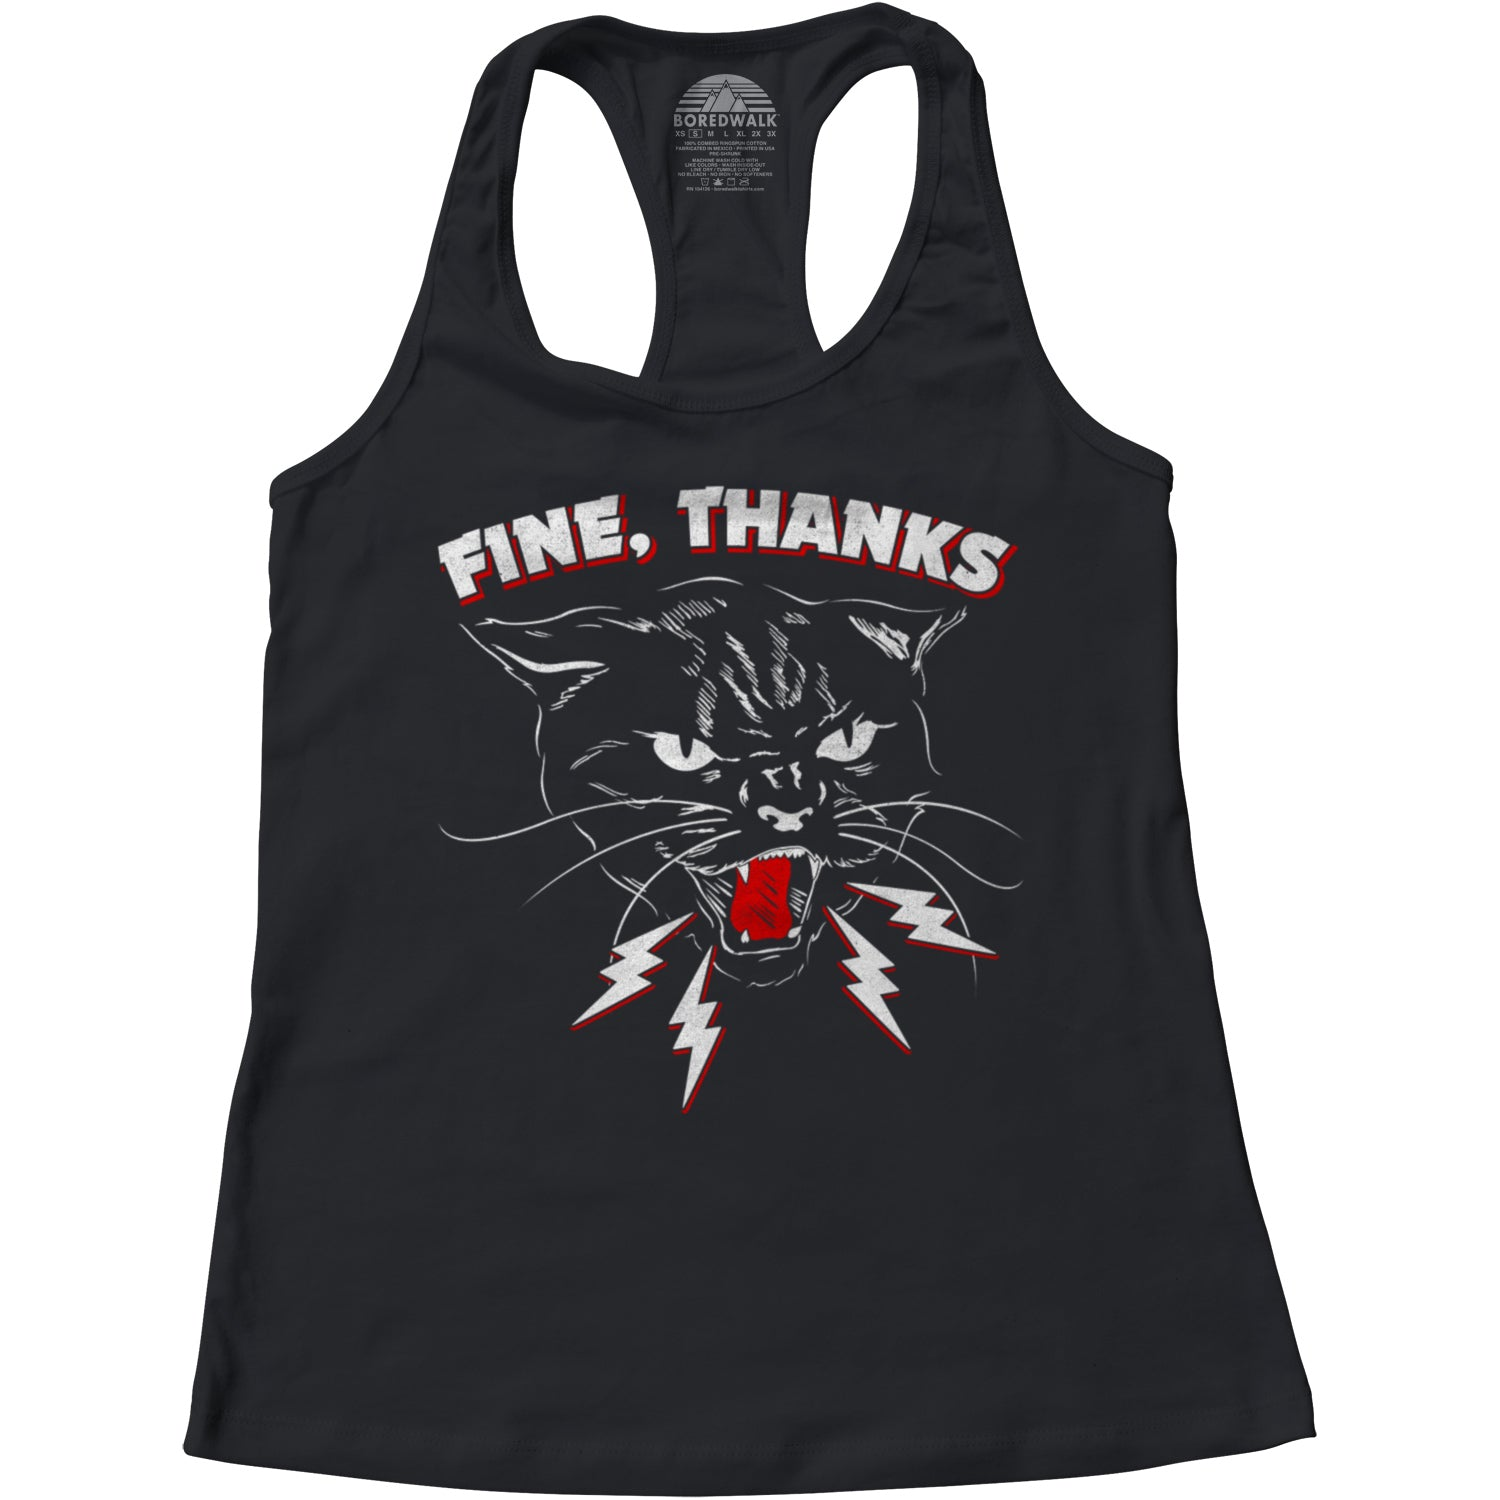 Women's Fine Thanks Racerback Tank Top